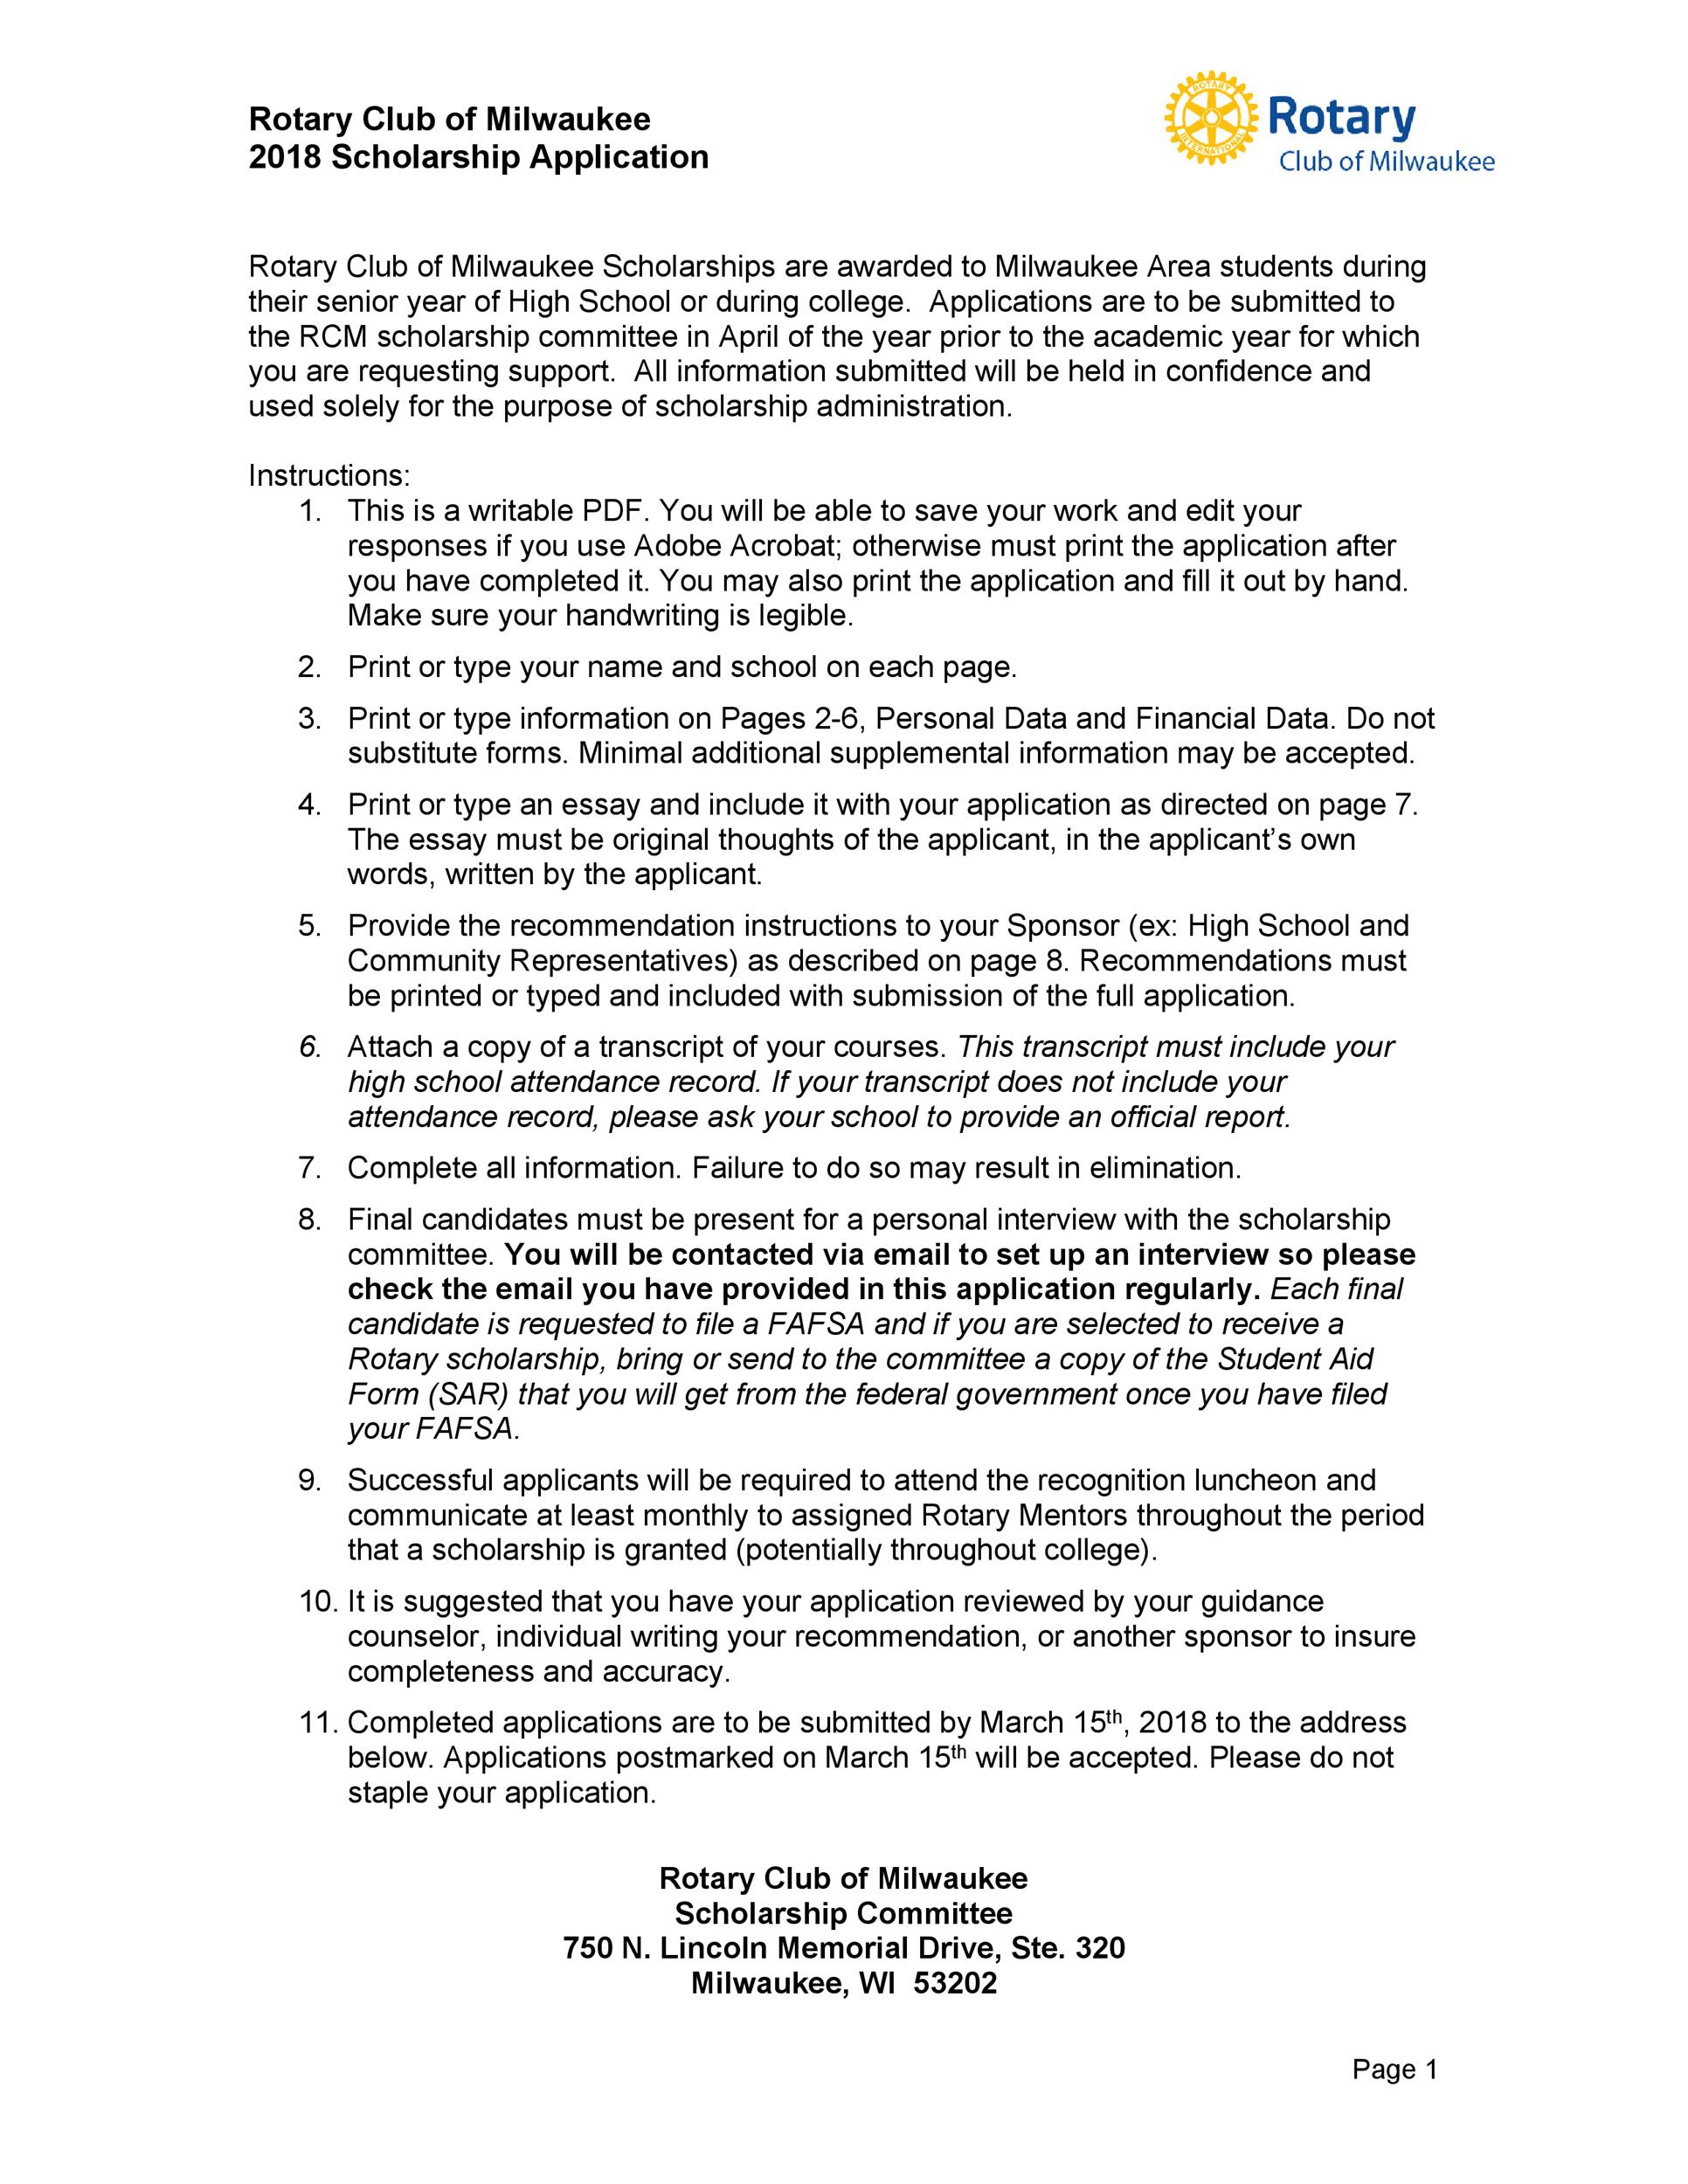 Free Scholarship Application Template 03